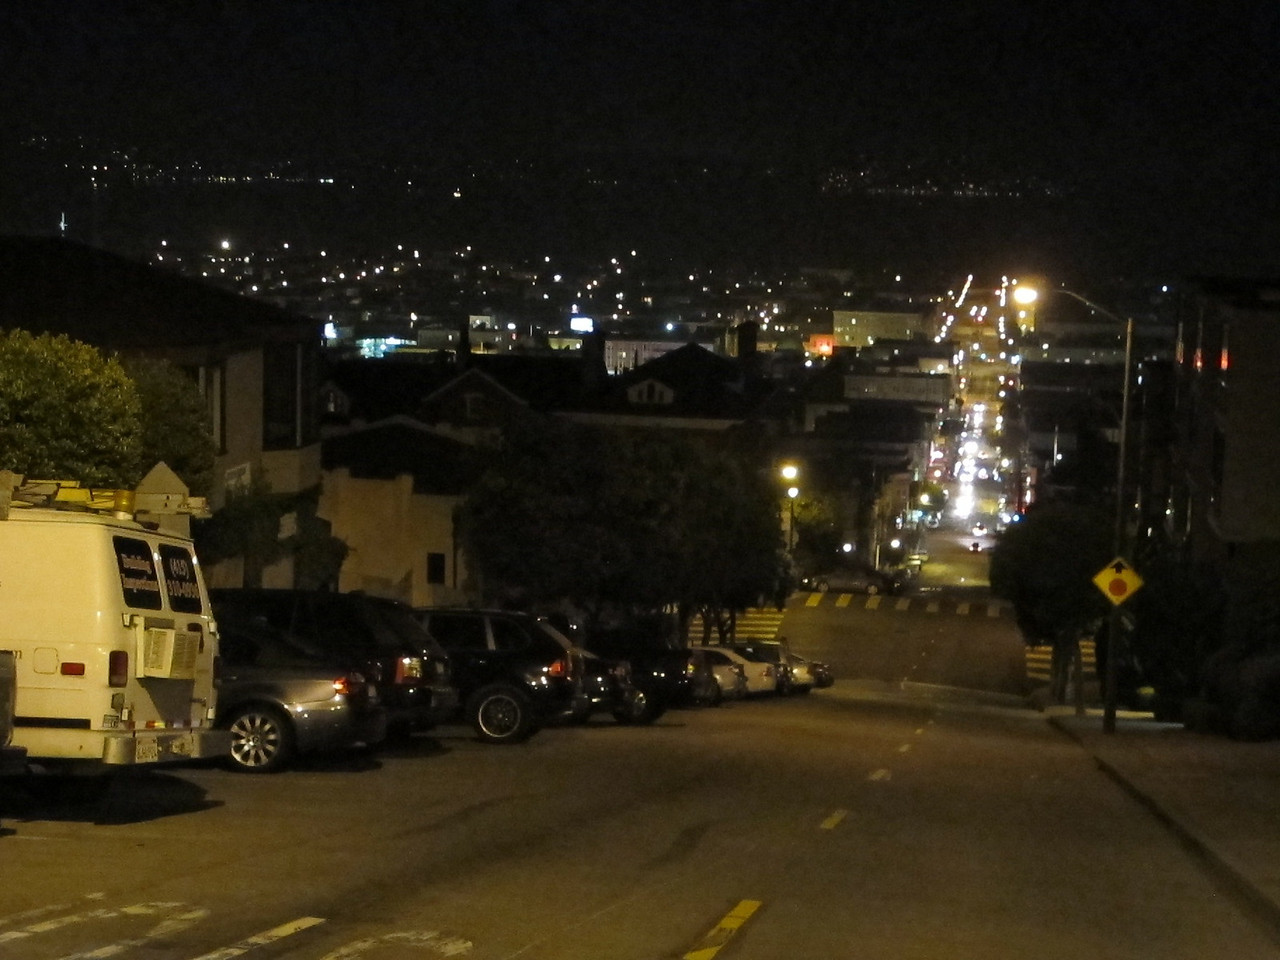 Looking towards the water down Folsom St. Steep San Francisco hills.